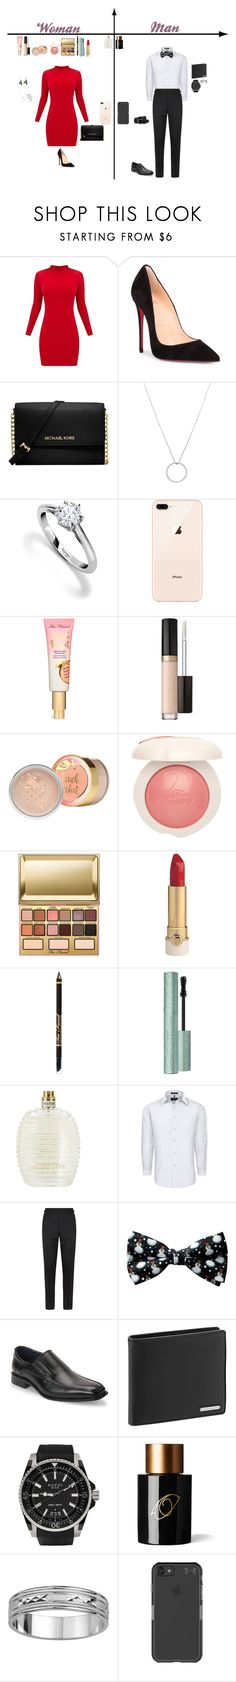 """""""Christmas Party"""" by dancingdiva2005 on Polyvore featuring Christian Louboutin, Michael Kors, Roberto Coin, Asprey, Kandee, Tommy Bahama, Tom Ford, Joseph Abboud, Porsche Design and Gucci"""